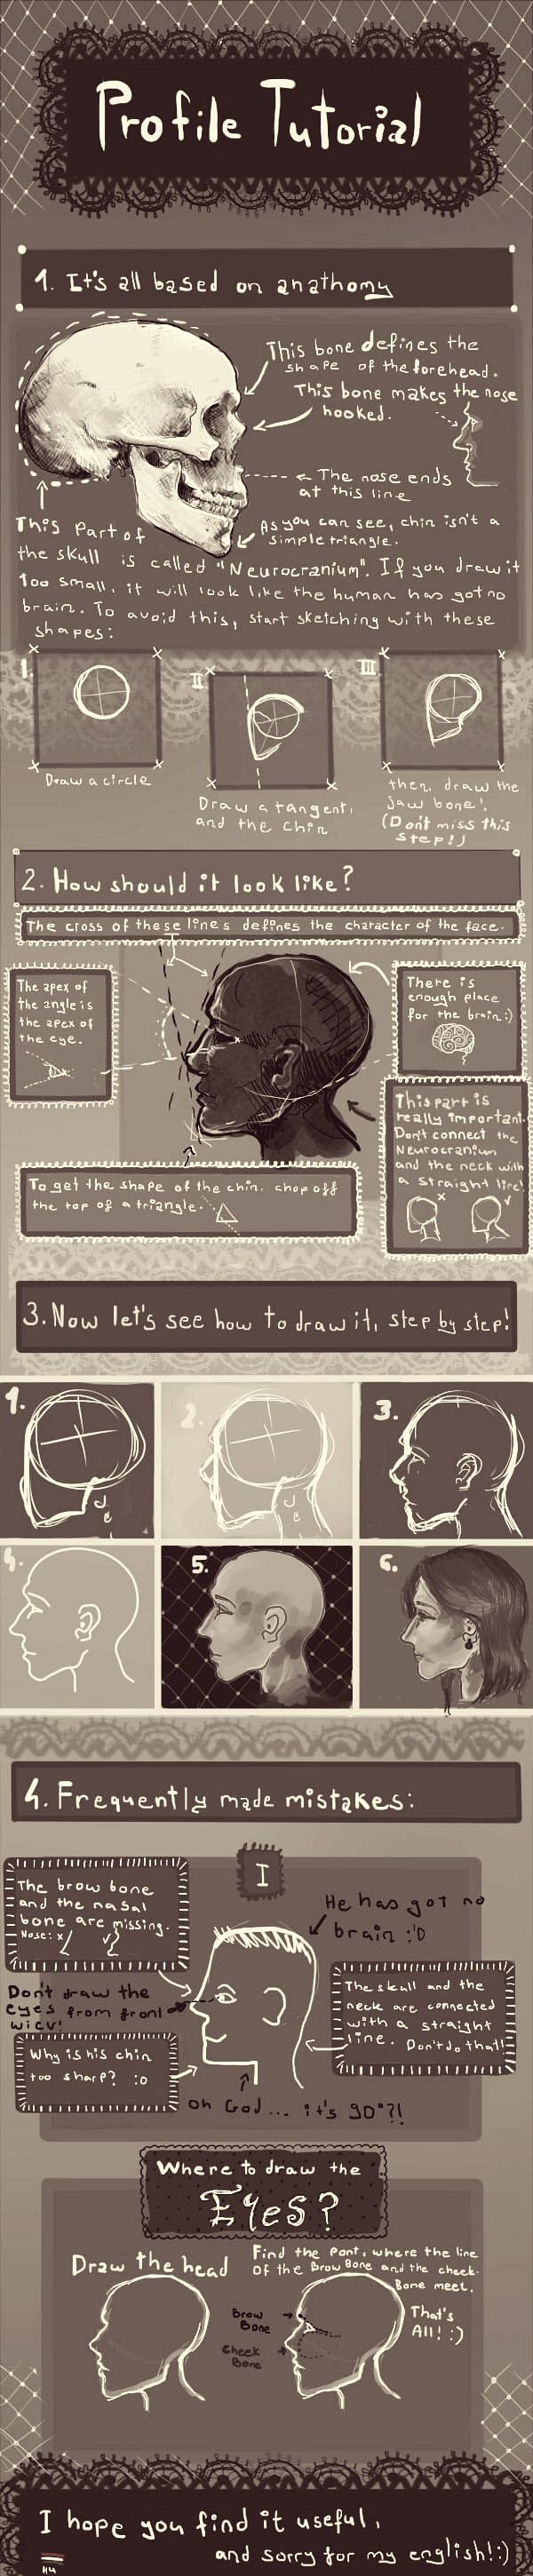 best ideas about profile drawing how to draw profile tutorial by on 9733 character design references love character design join the linkrarr share your unique vision of a theme